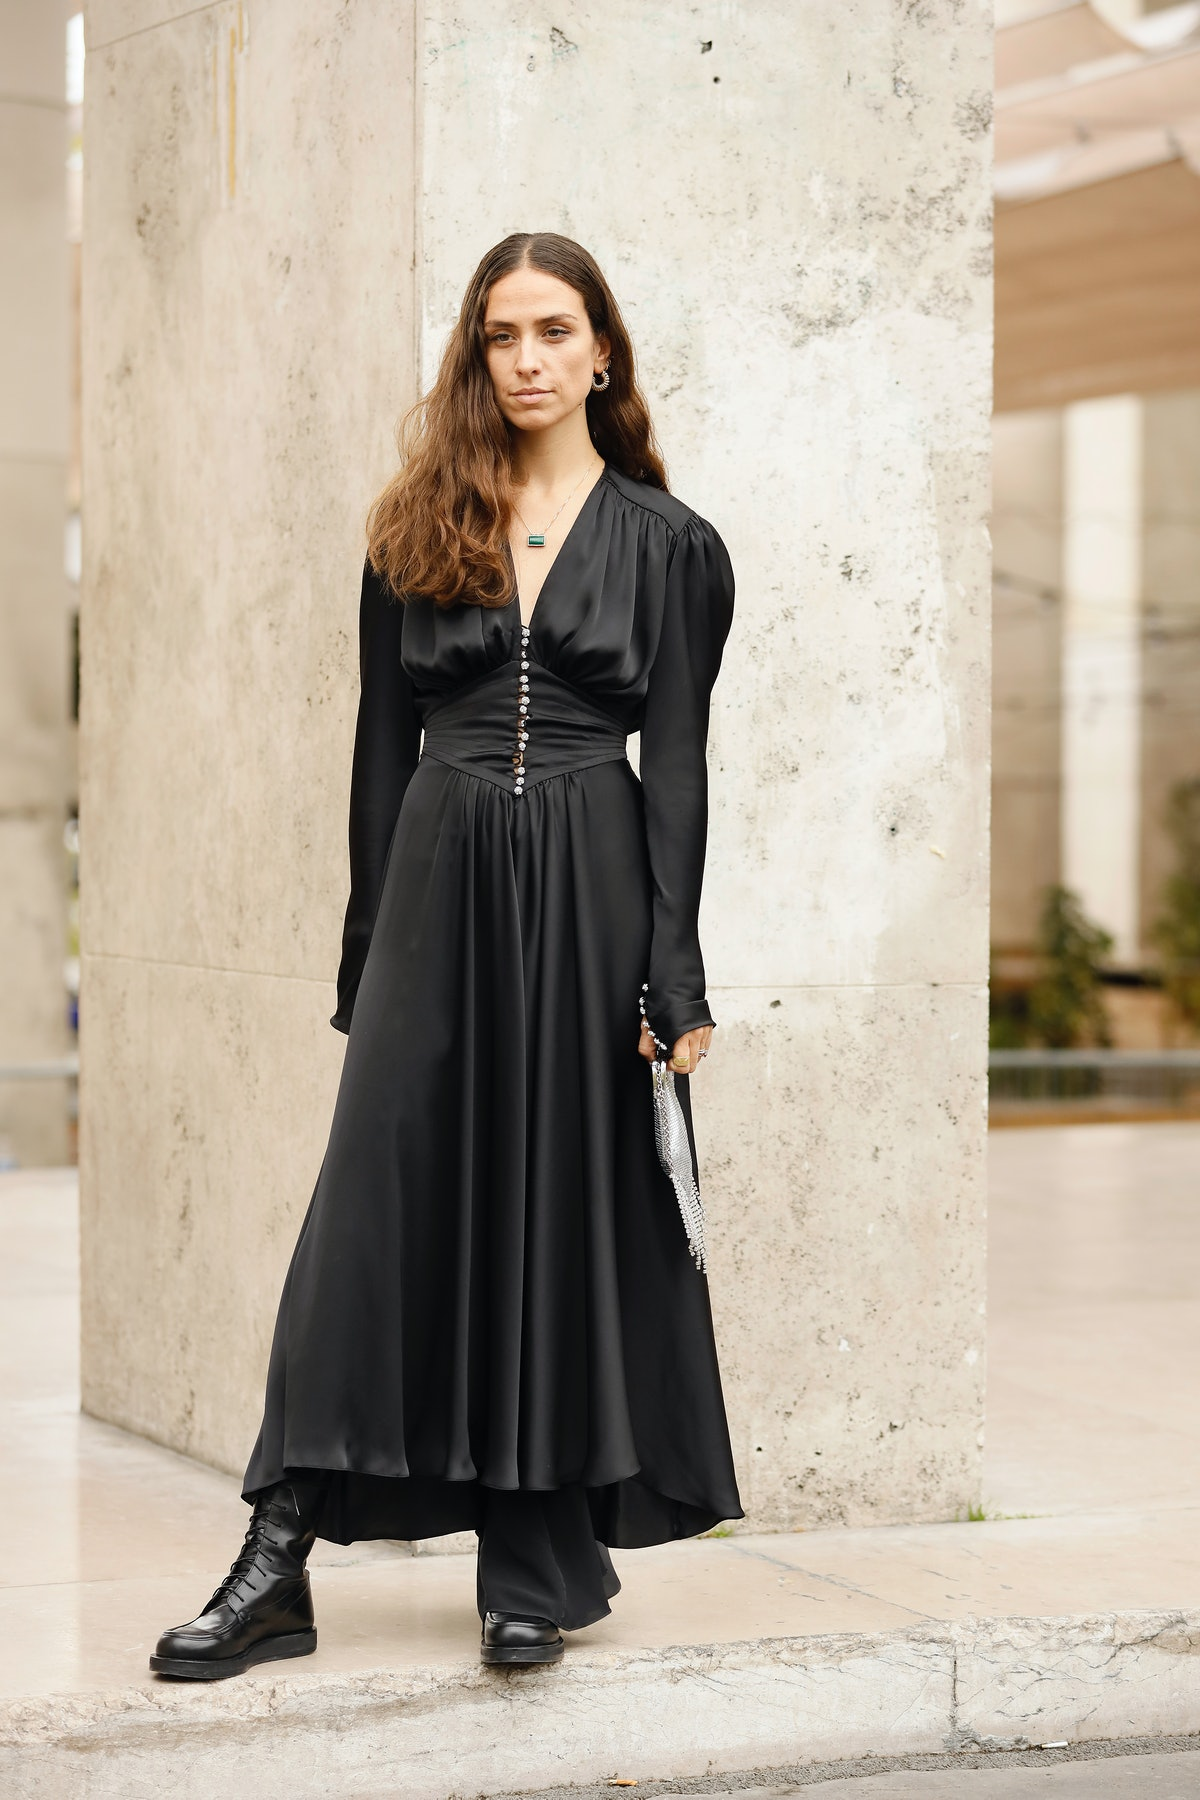 Street style photo of influencer Erika Boldrin wearing a black silk maxi dress and combat boots at P...